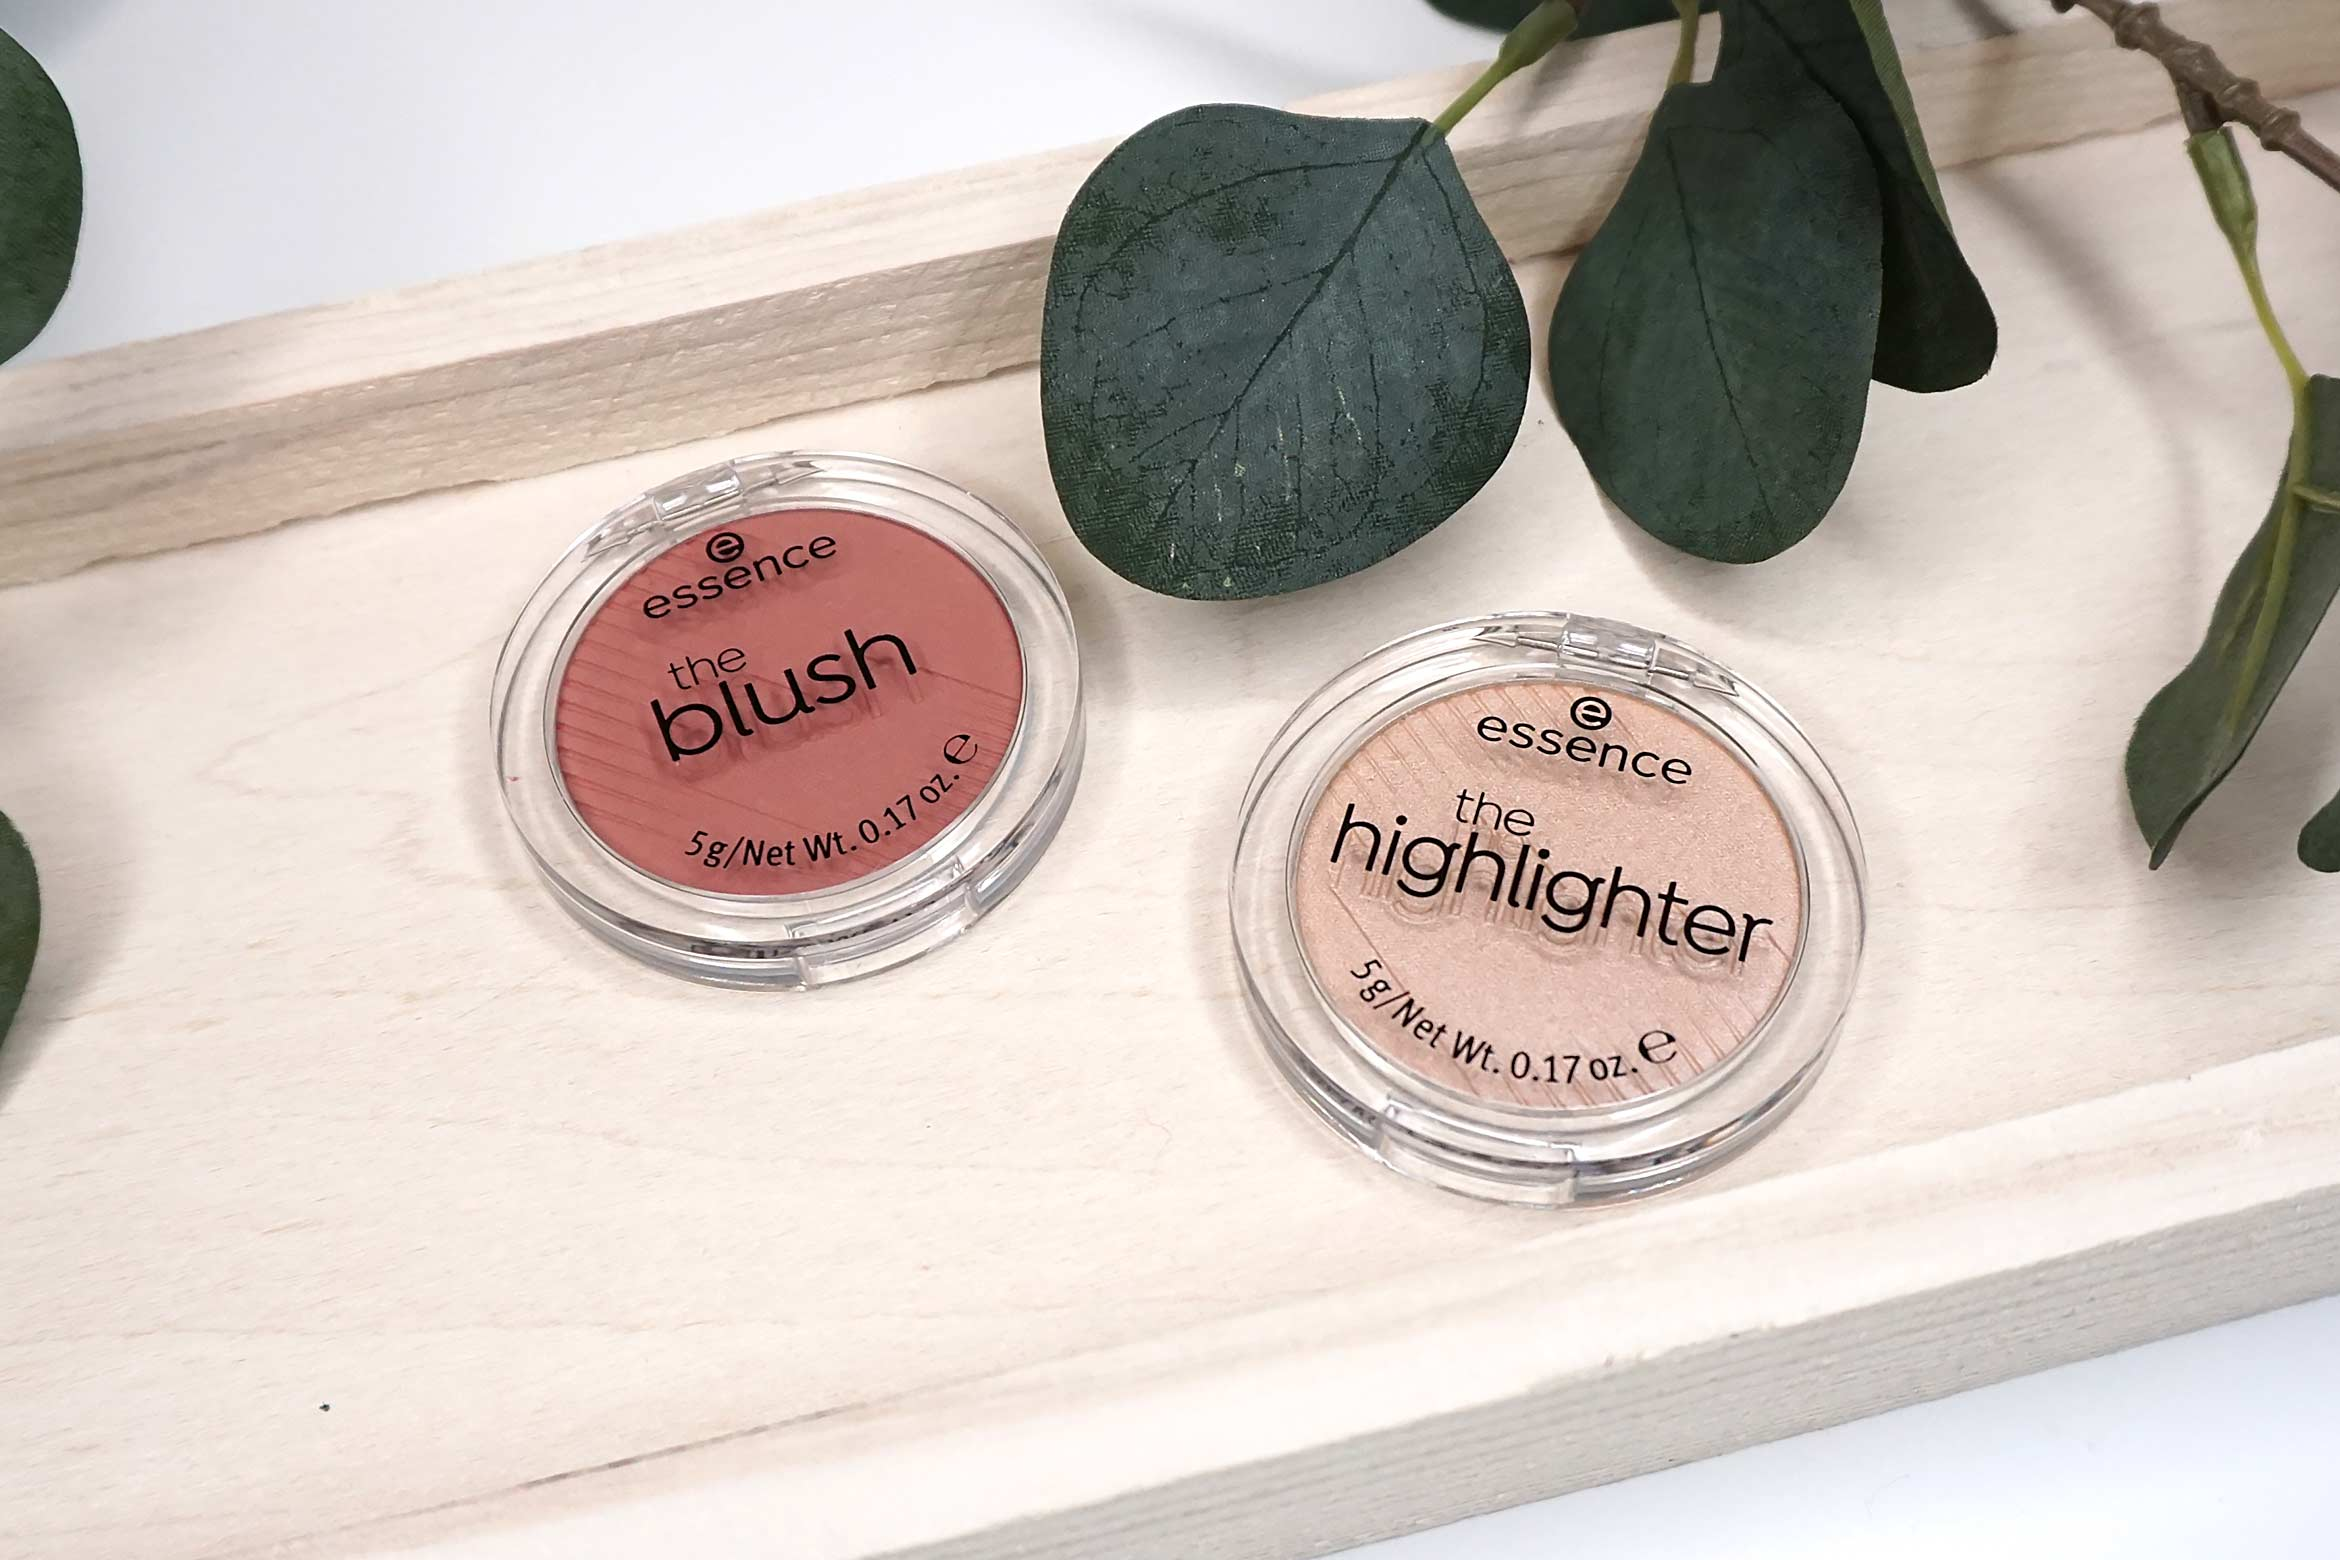 essence-the-blush-review-essence-the-highlighter-review-1